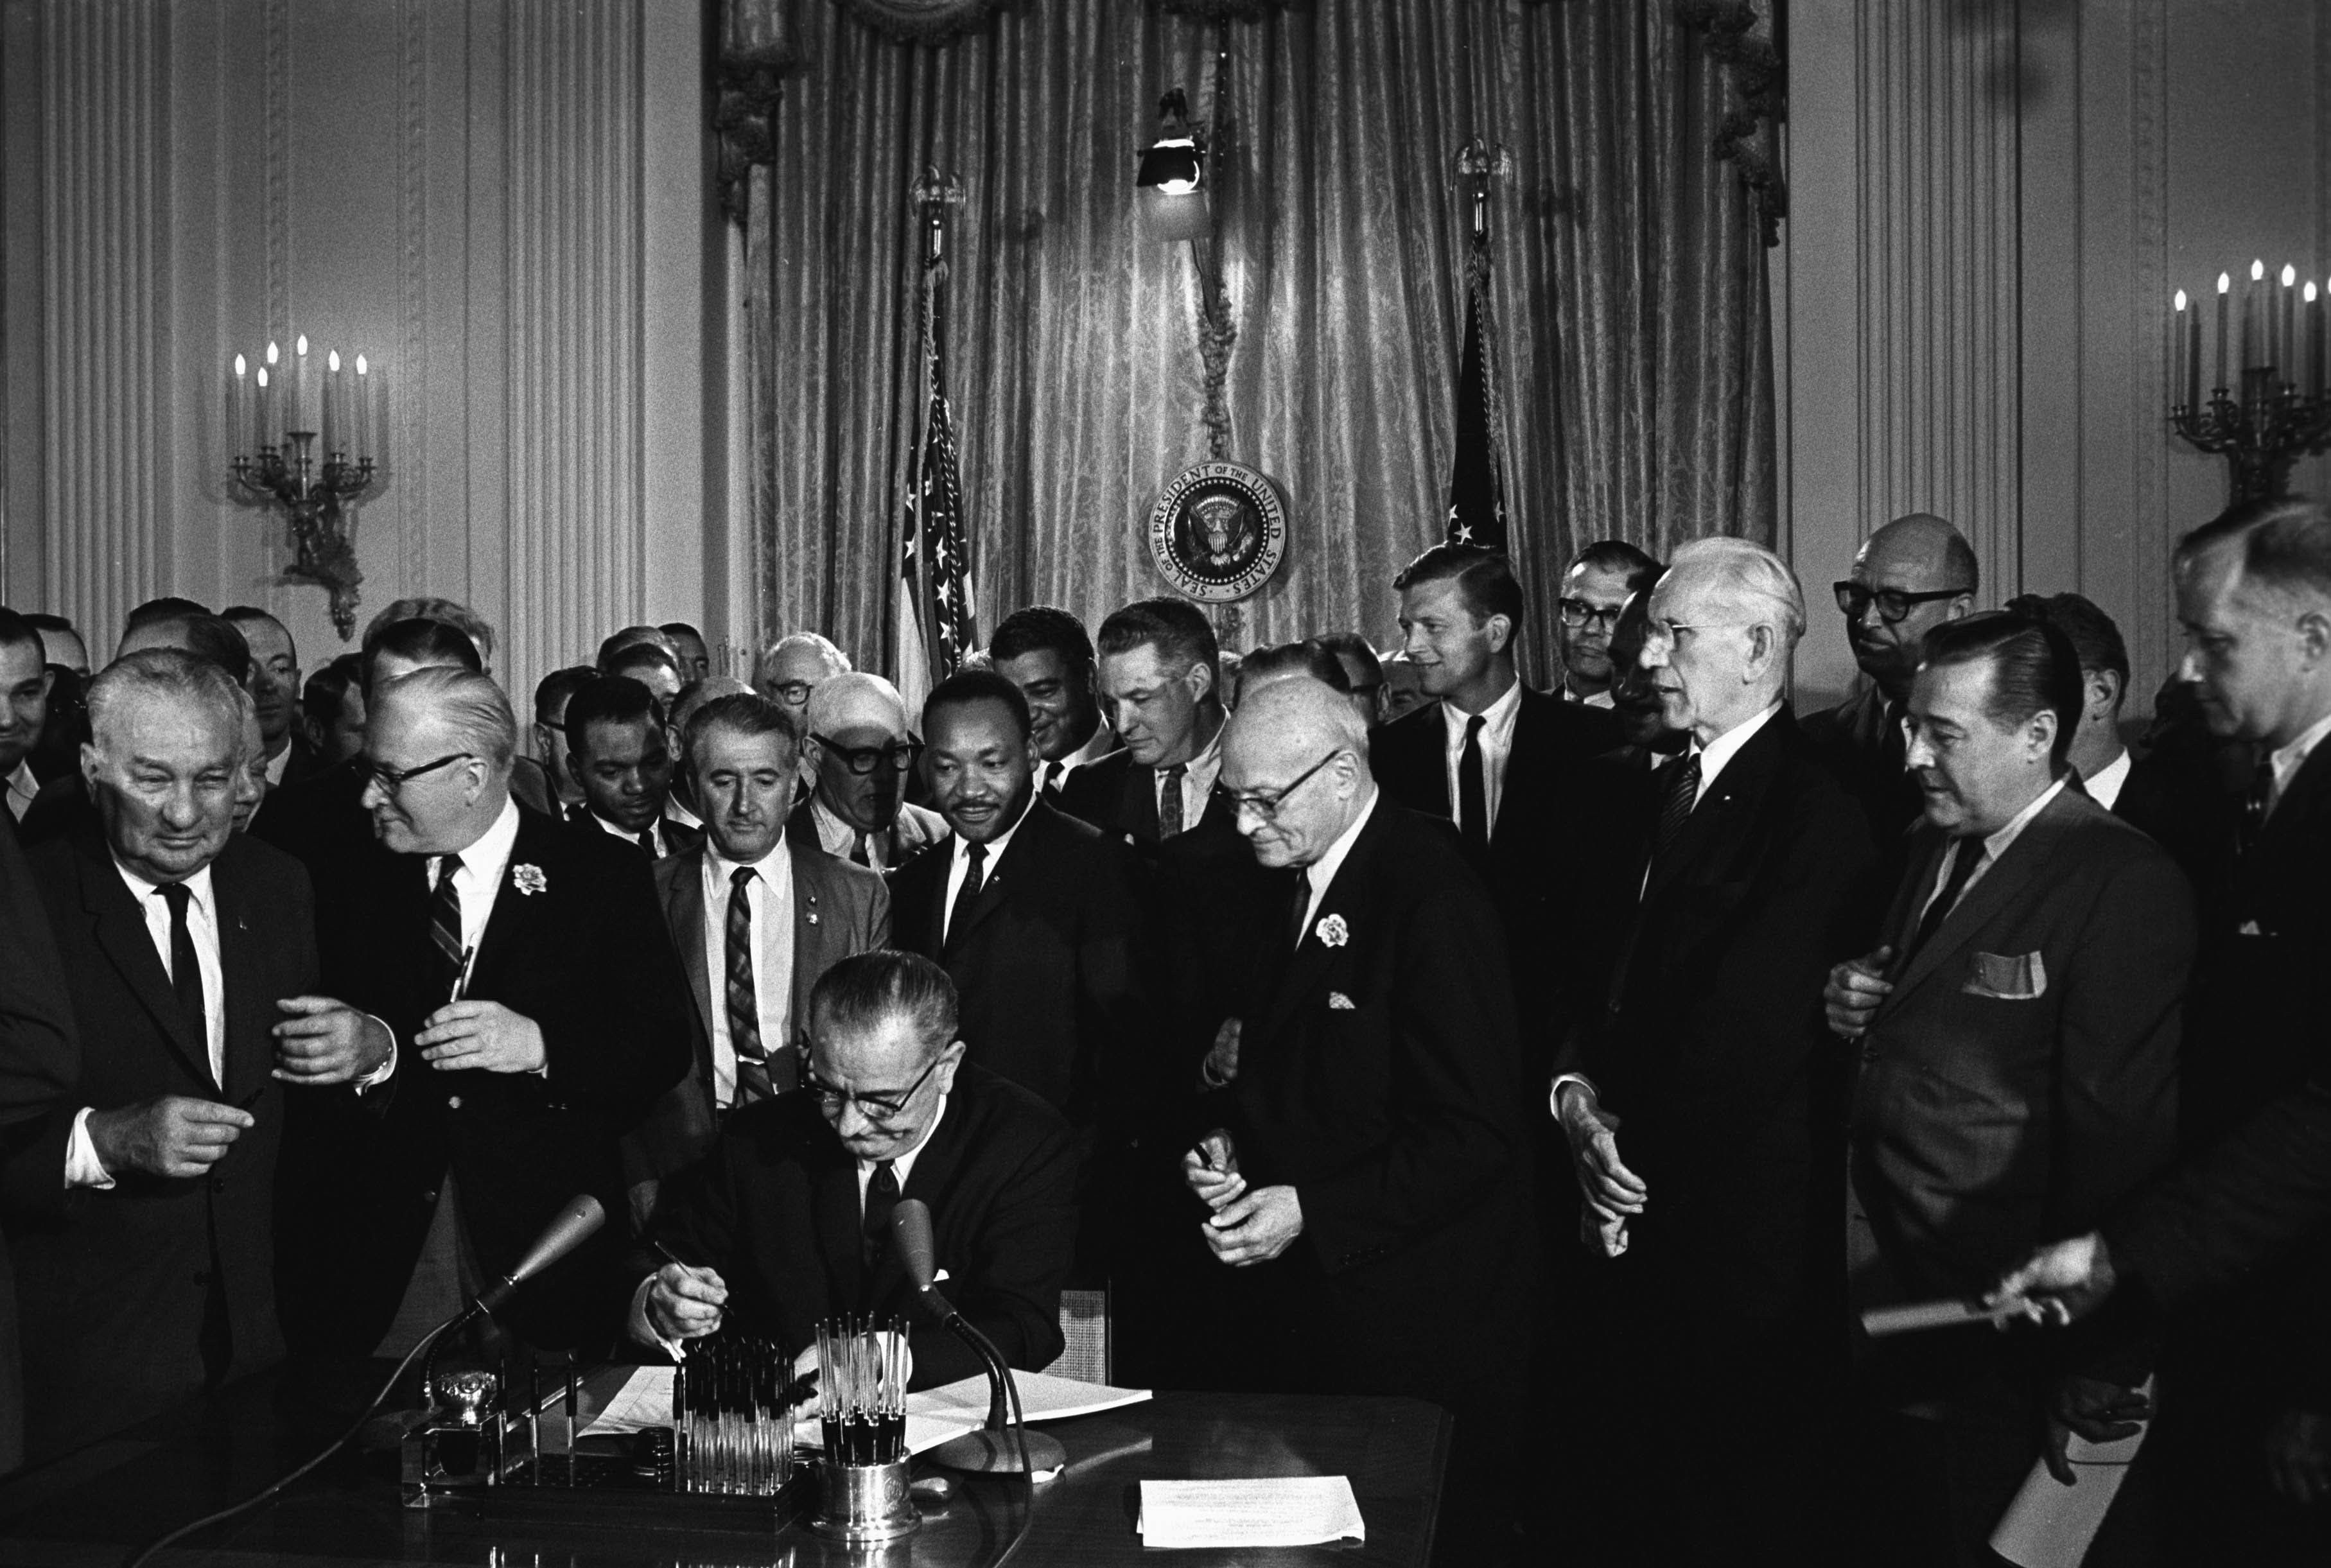 Then-President Lyndon B. Johnson signs the 1964 Civil Rights Act, which established a Justice Department office to provi